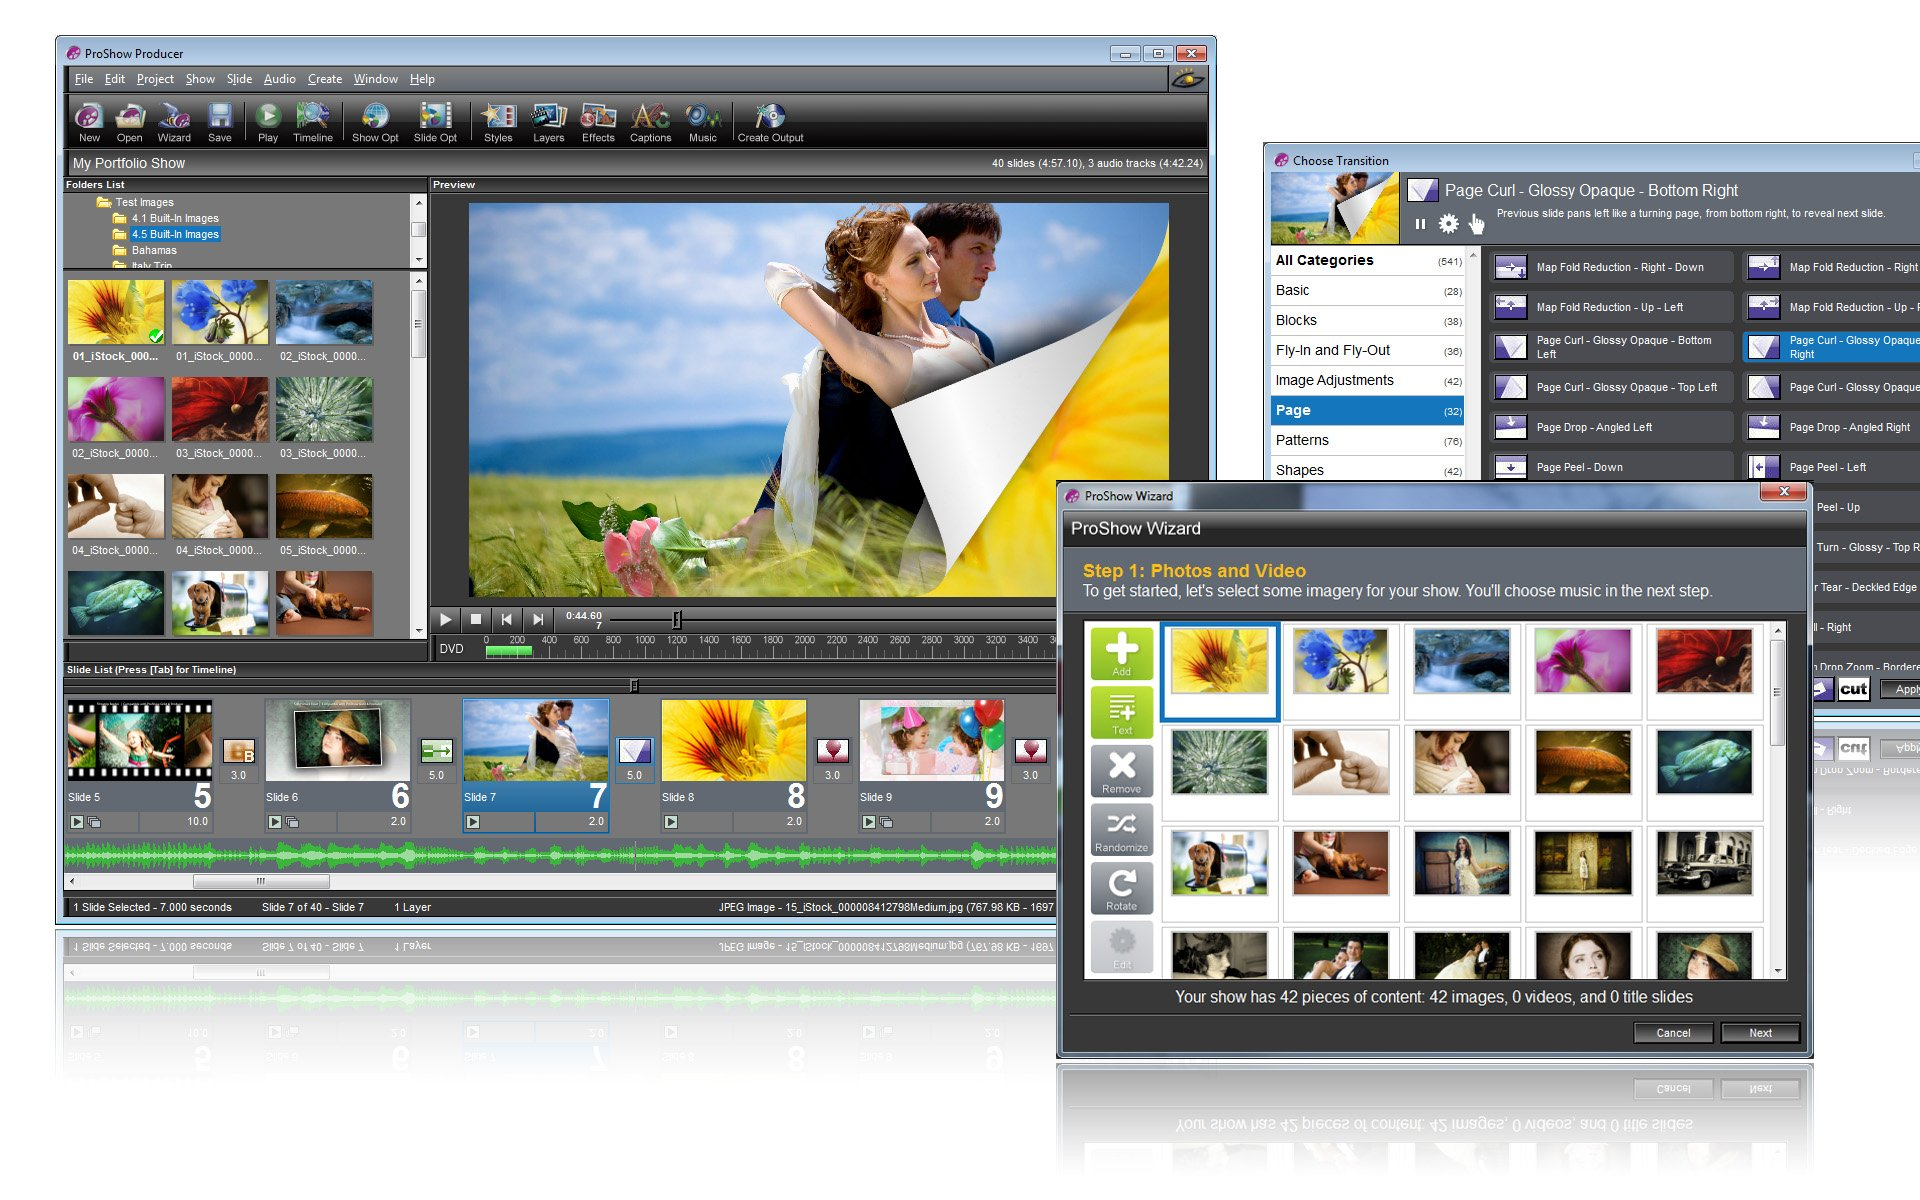 GRATUIT PROSHOW GRATUIT 4.5.2929 TÉLÉCHARGER PHOTODEX PRODUCER